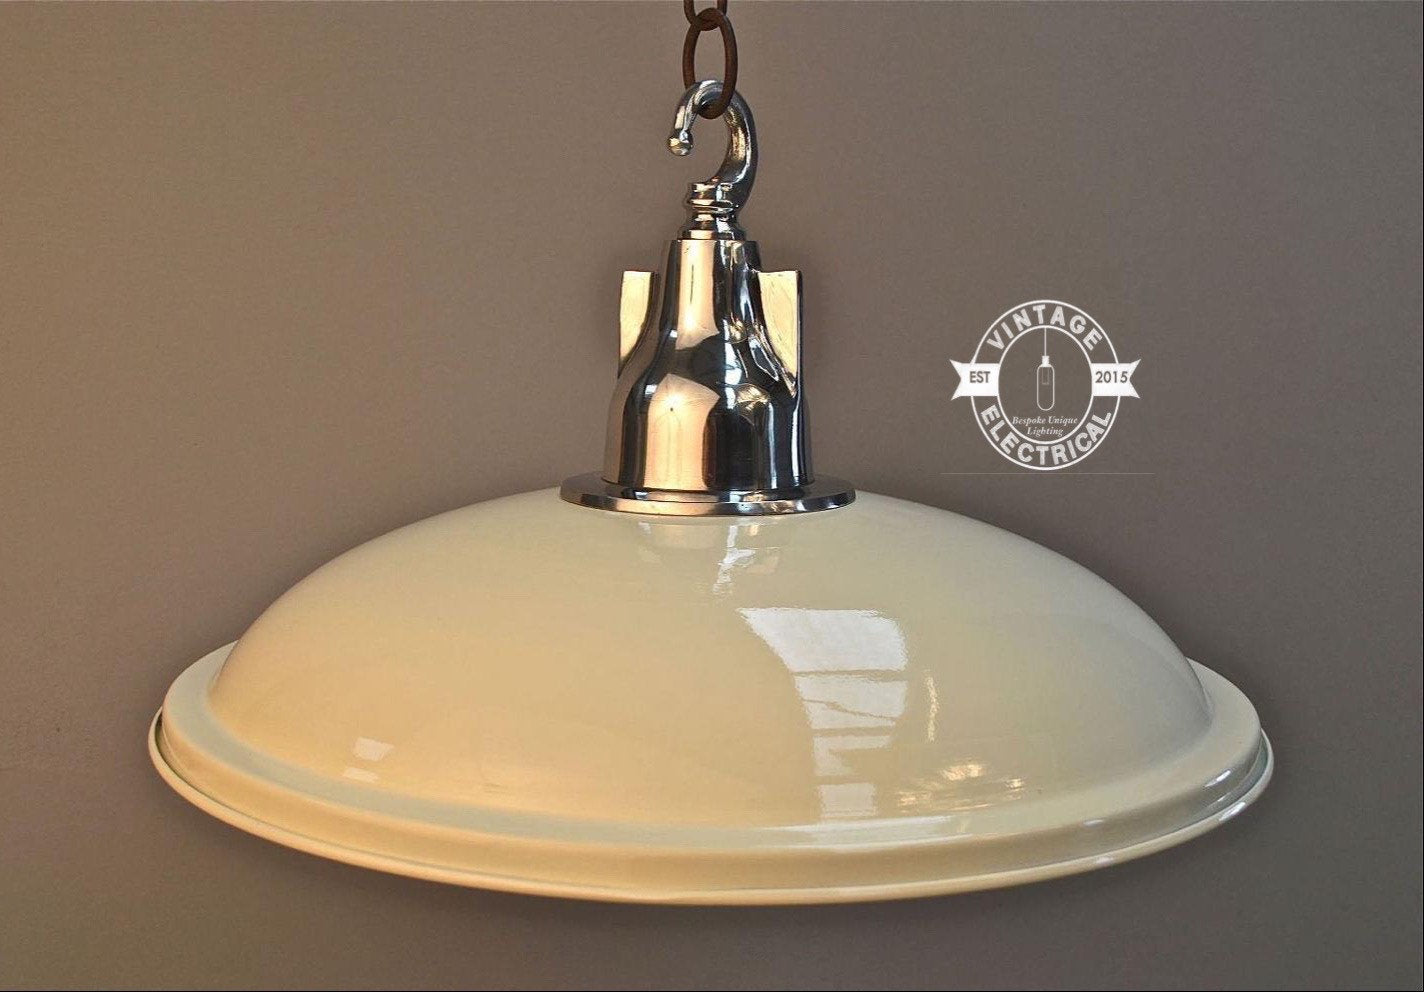 Bircham ~ Cream French Style Industrial Shade Pendant Set Light | Ceiling Dining Room | Kitchen Table | Vintage 1 x Edison Filament Bulb